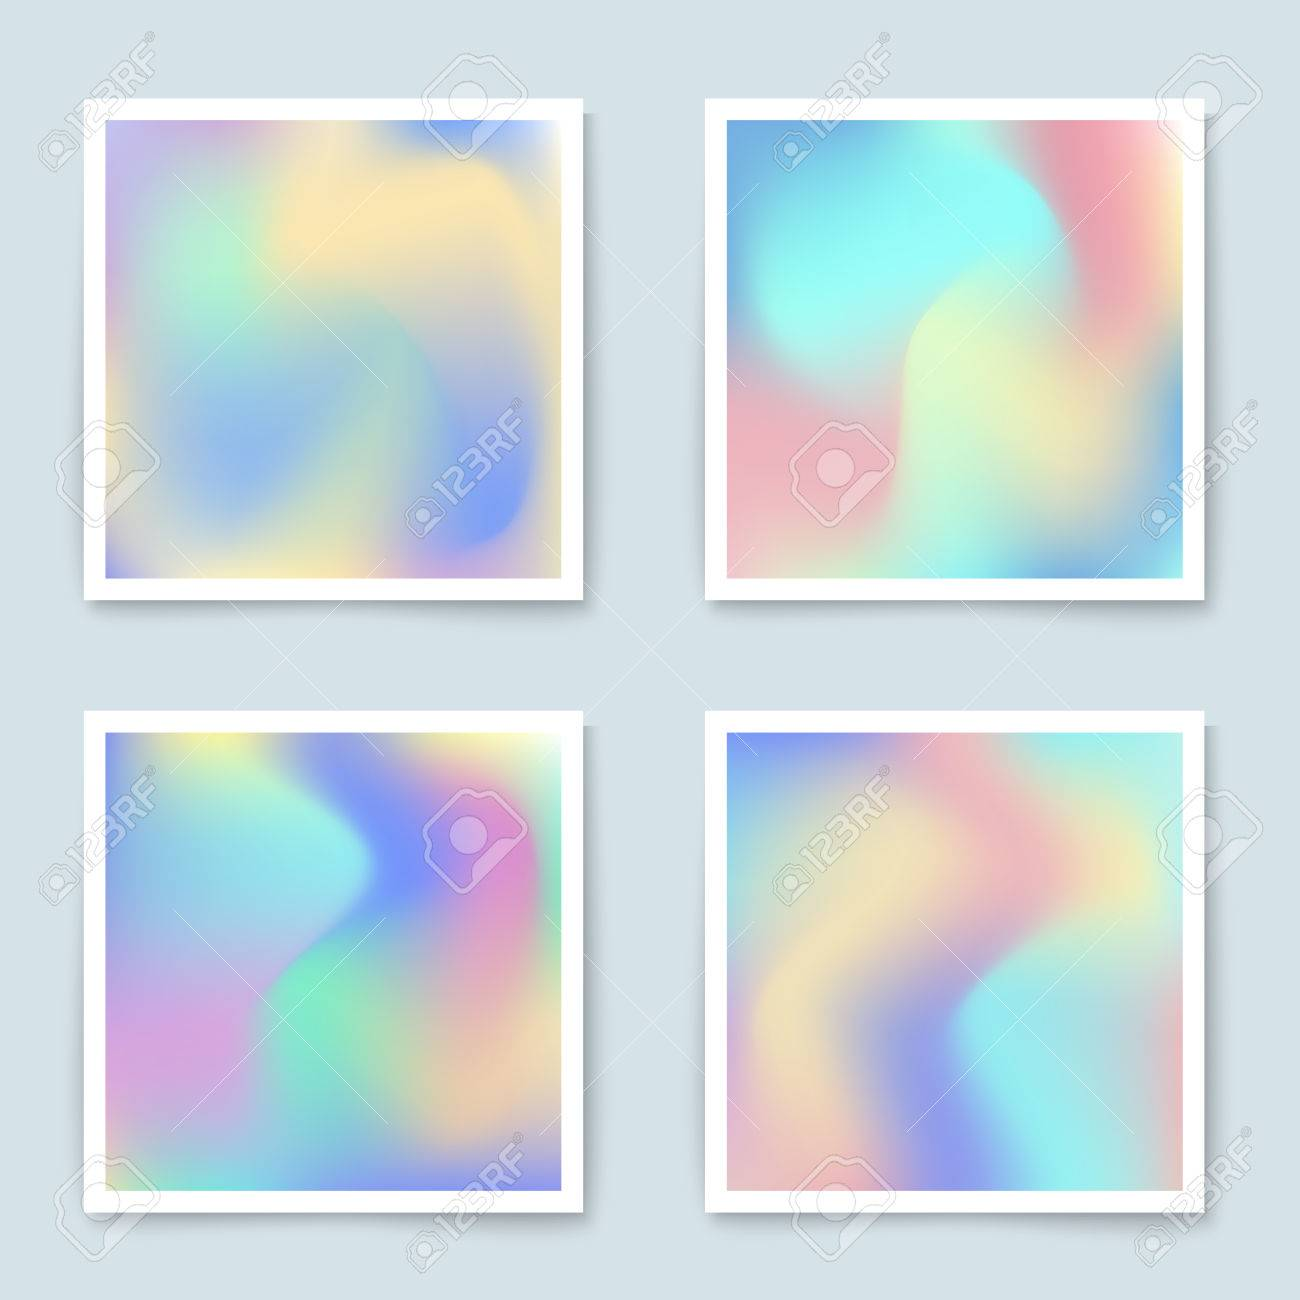 Hologram colorful backgrounds set in pastel colors vector mesh hologram colorful backgrounds set in pastel colors vector mesh template design for greeting card kristyandbryce Gallery